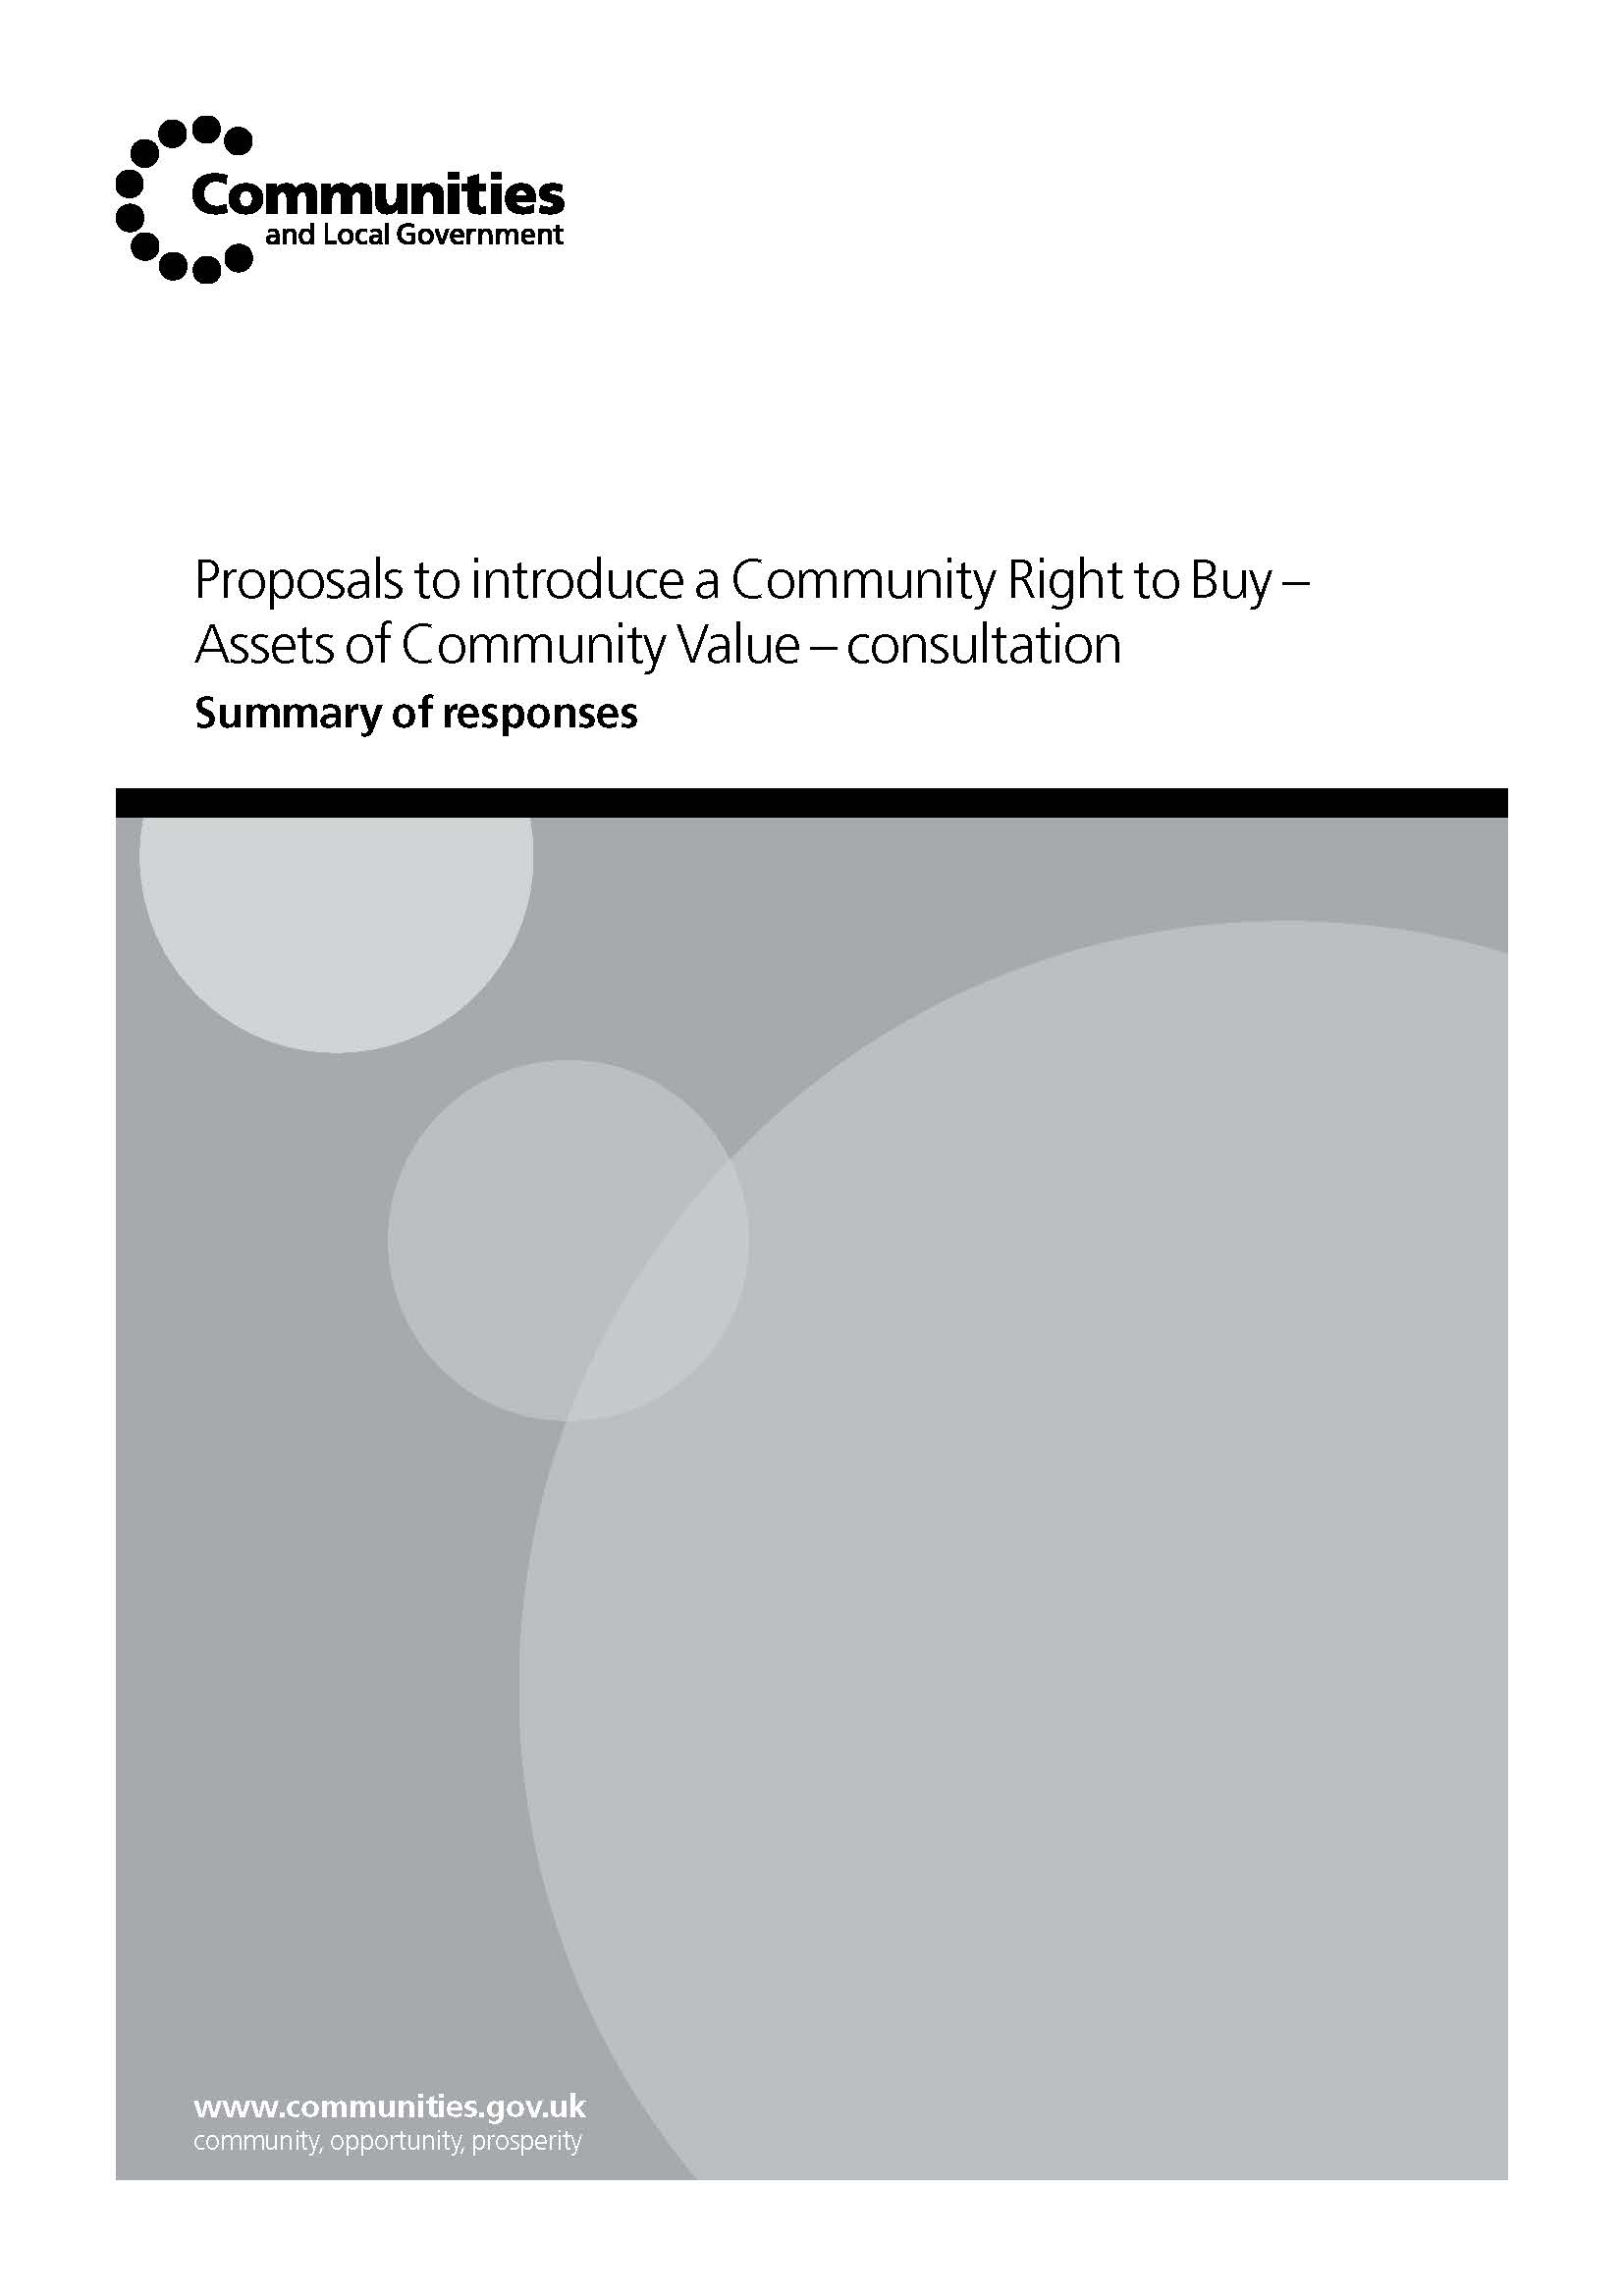 Proposals to introduce a Community Right to Buy – Assets of Community Value – consultation (Summary of responses)